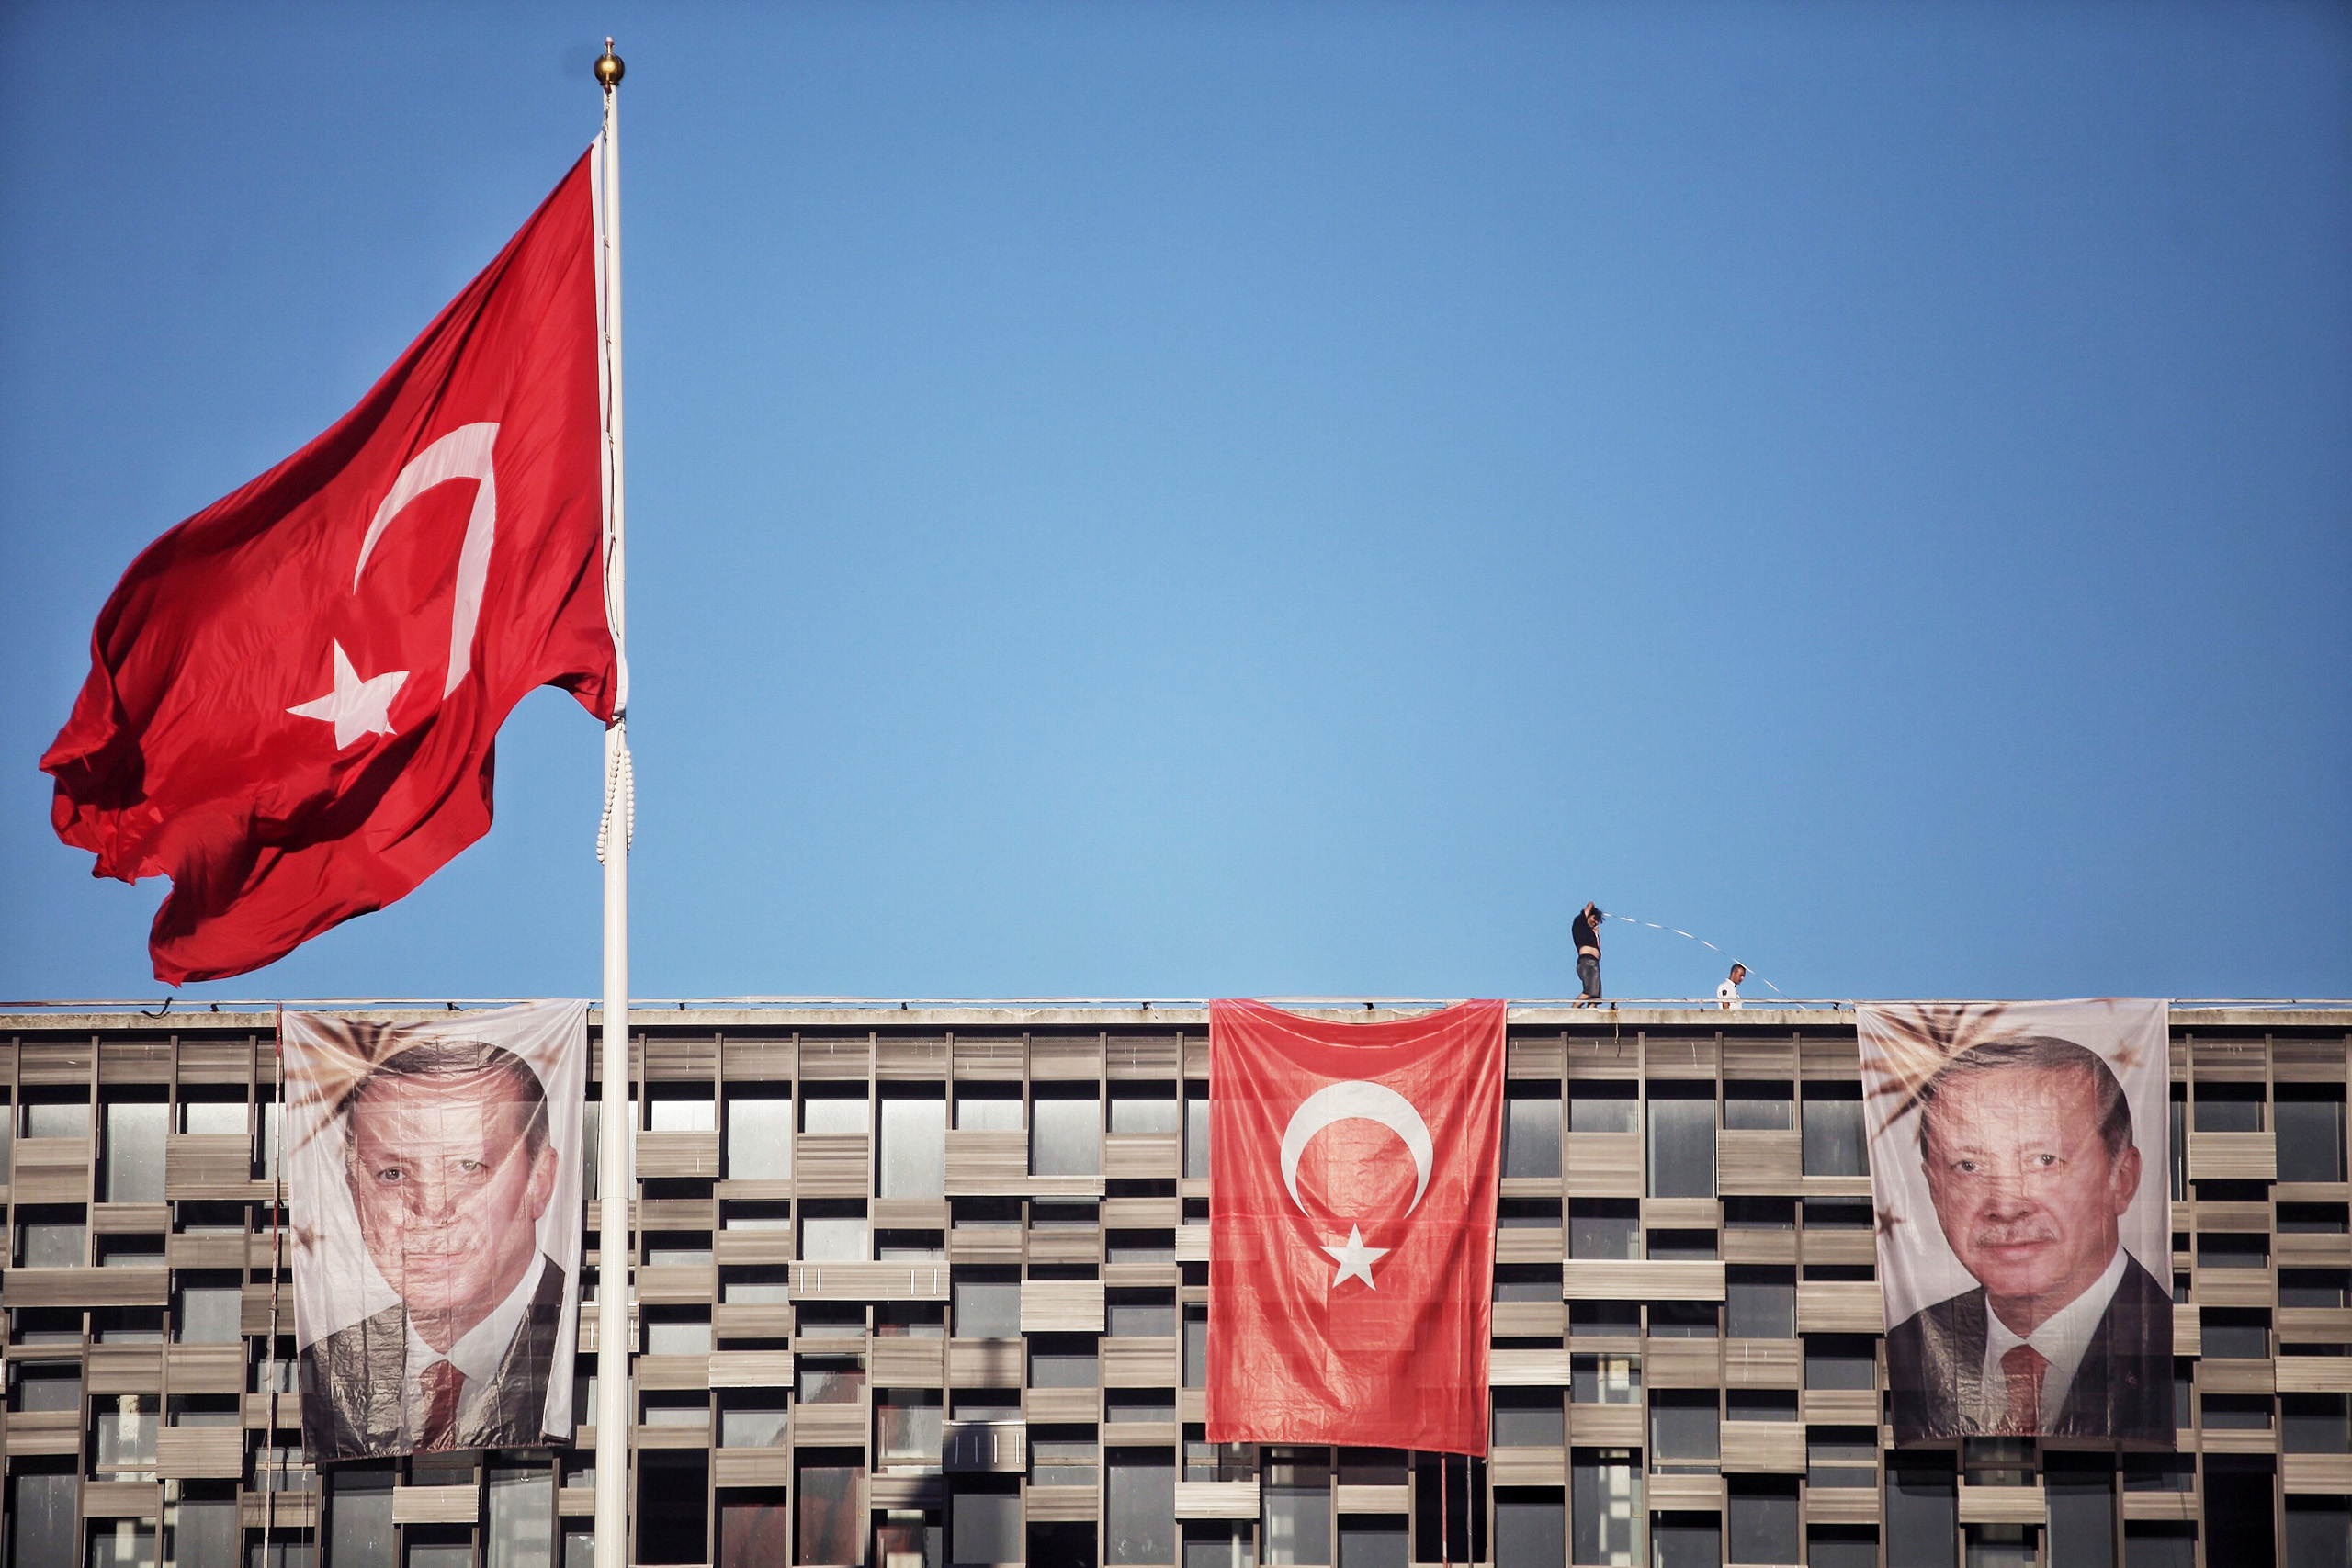 Posters of Turkey's President Recep Tayyip Erdogan and a Turkish flag hangs on Ataturk Cultural Center at Istanbul's central Taksim on July 19, 2016.